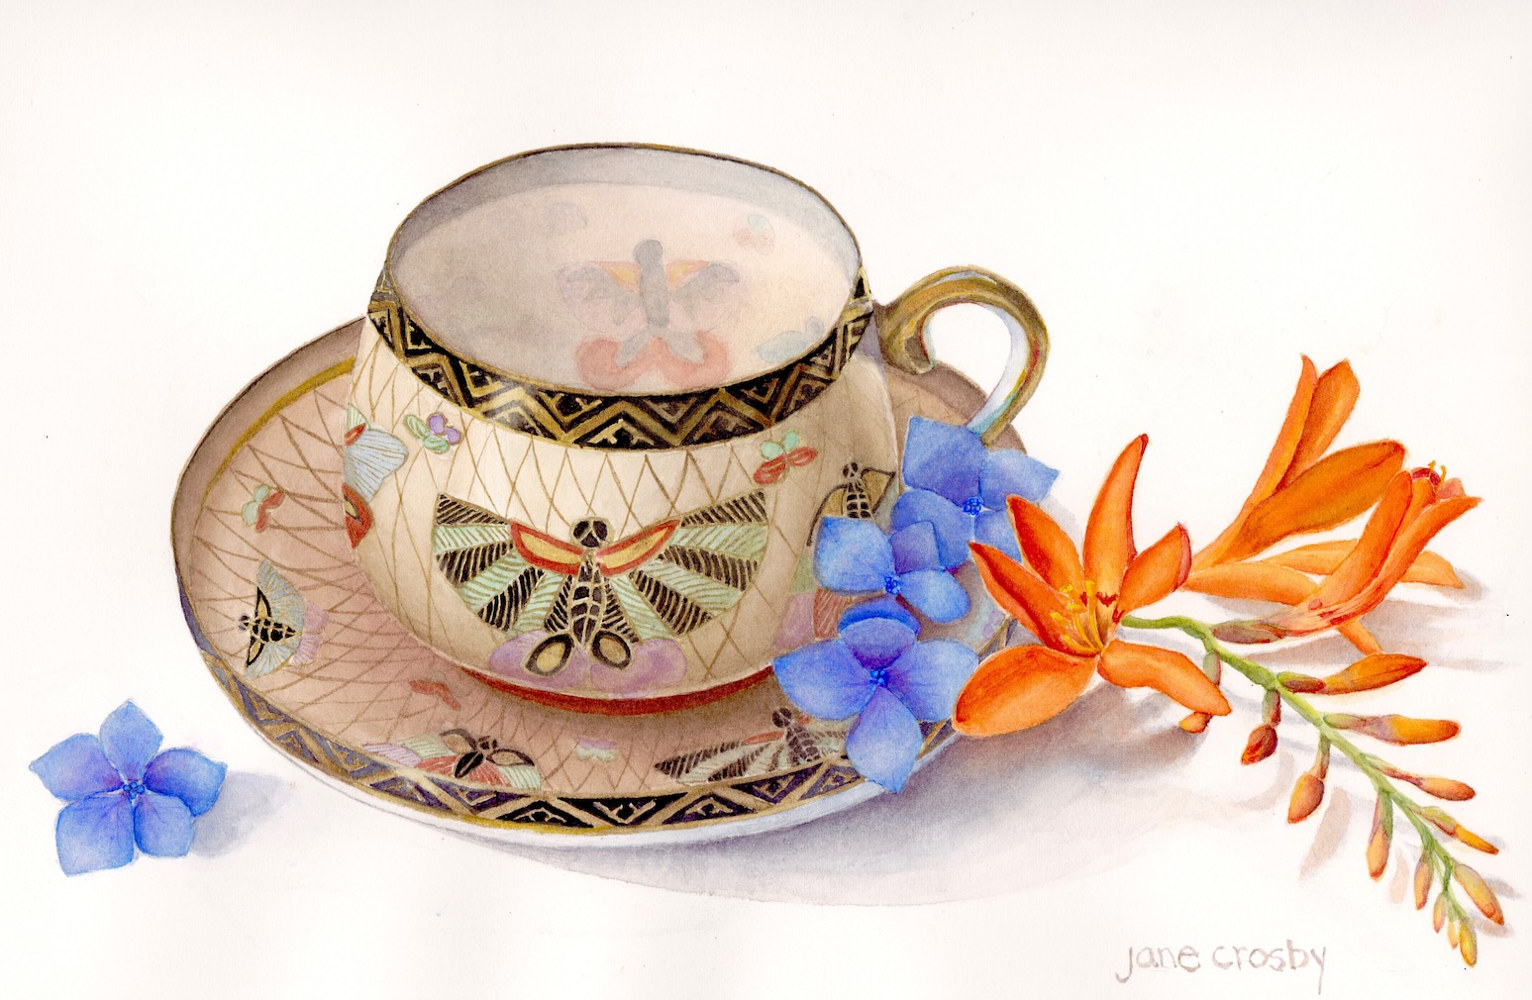 Watercolor Butterfly Teacup by Jane Crosby